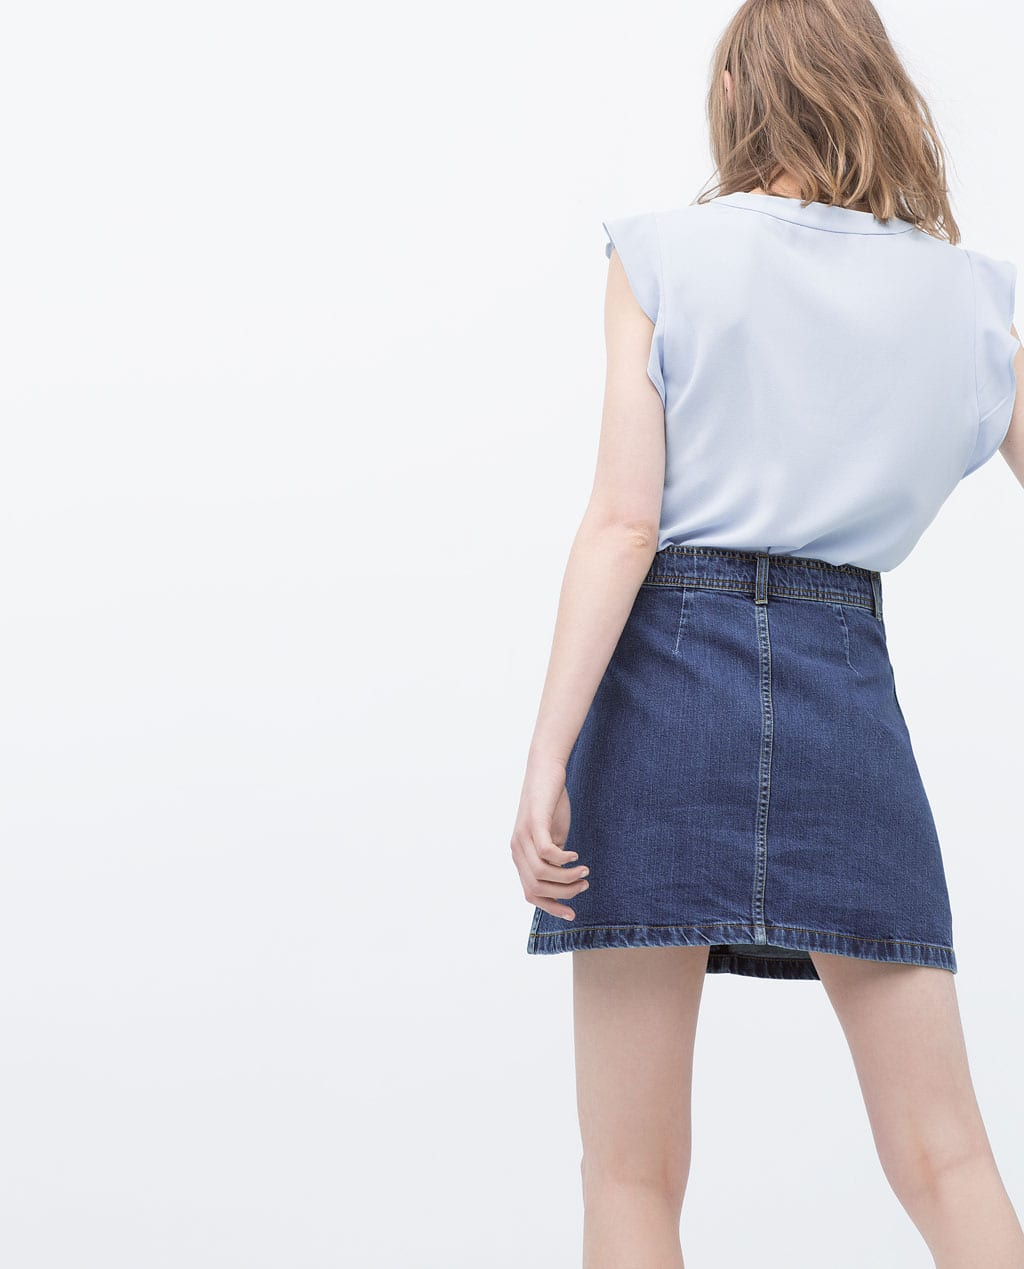 70s denim skirt l amour style minimalism